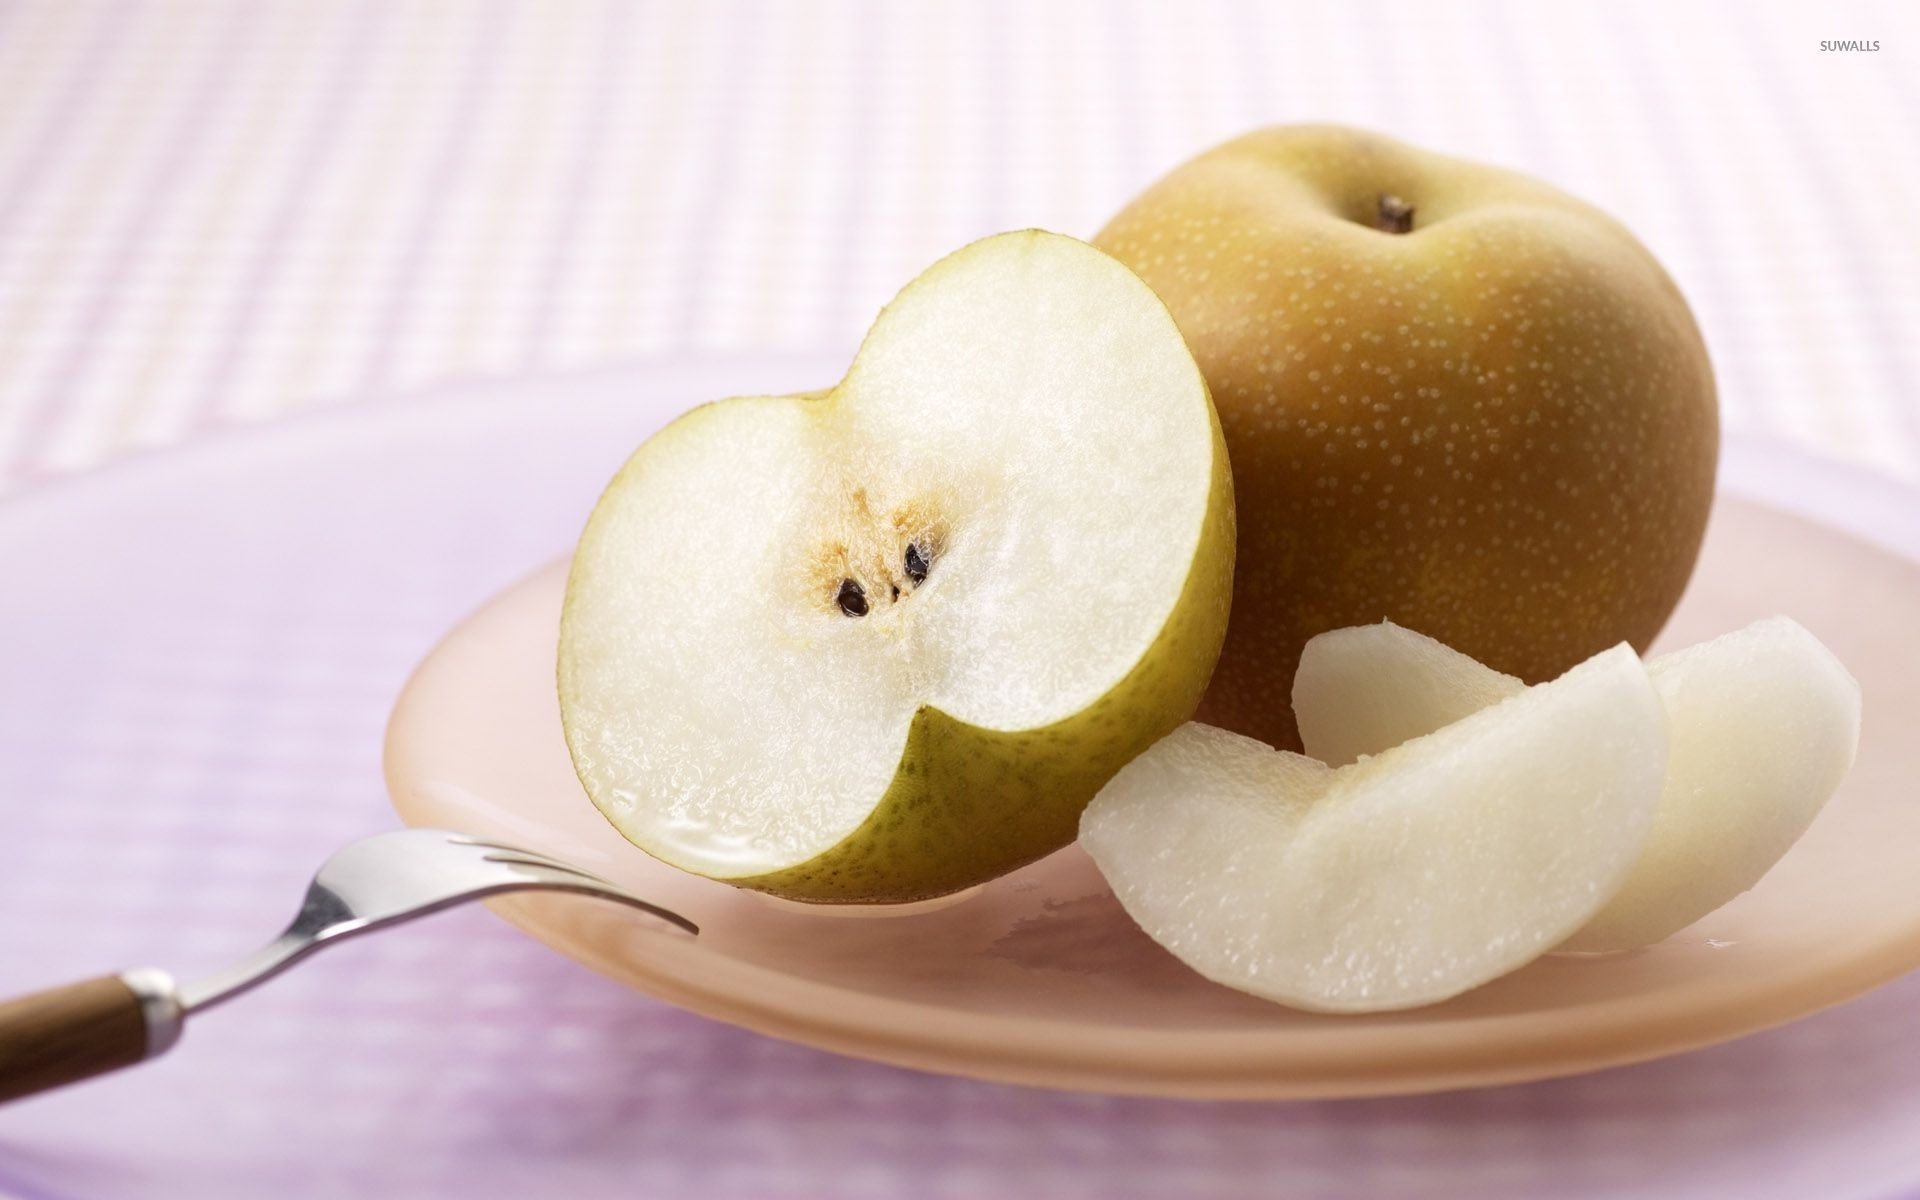 1920x1200 Nashi pear on a table wallpaper